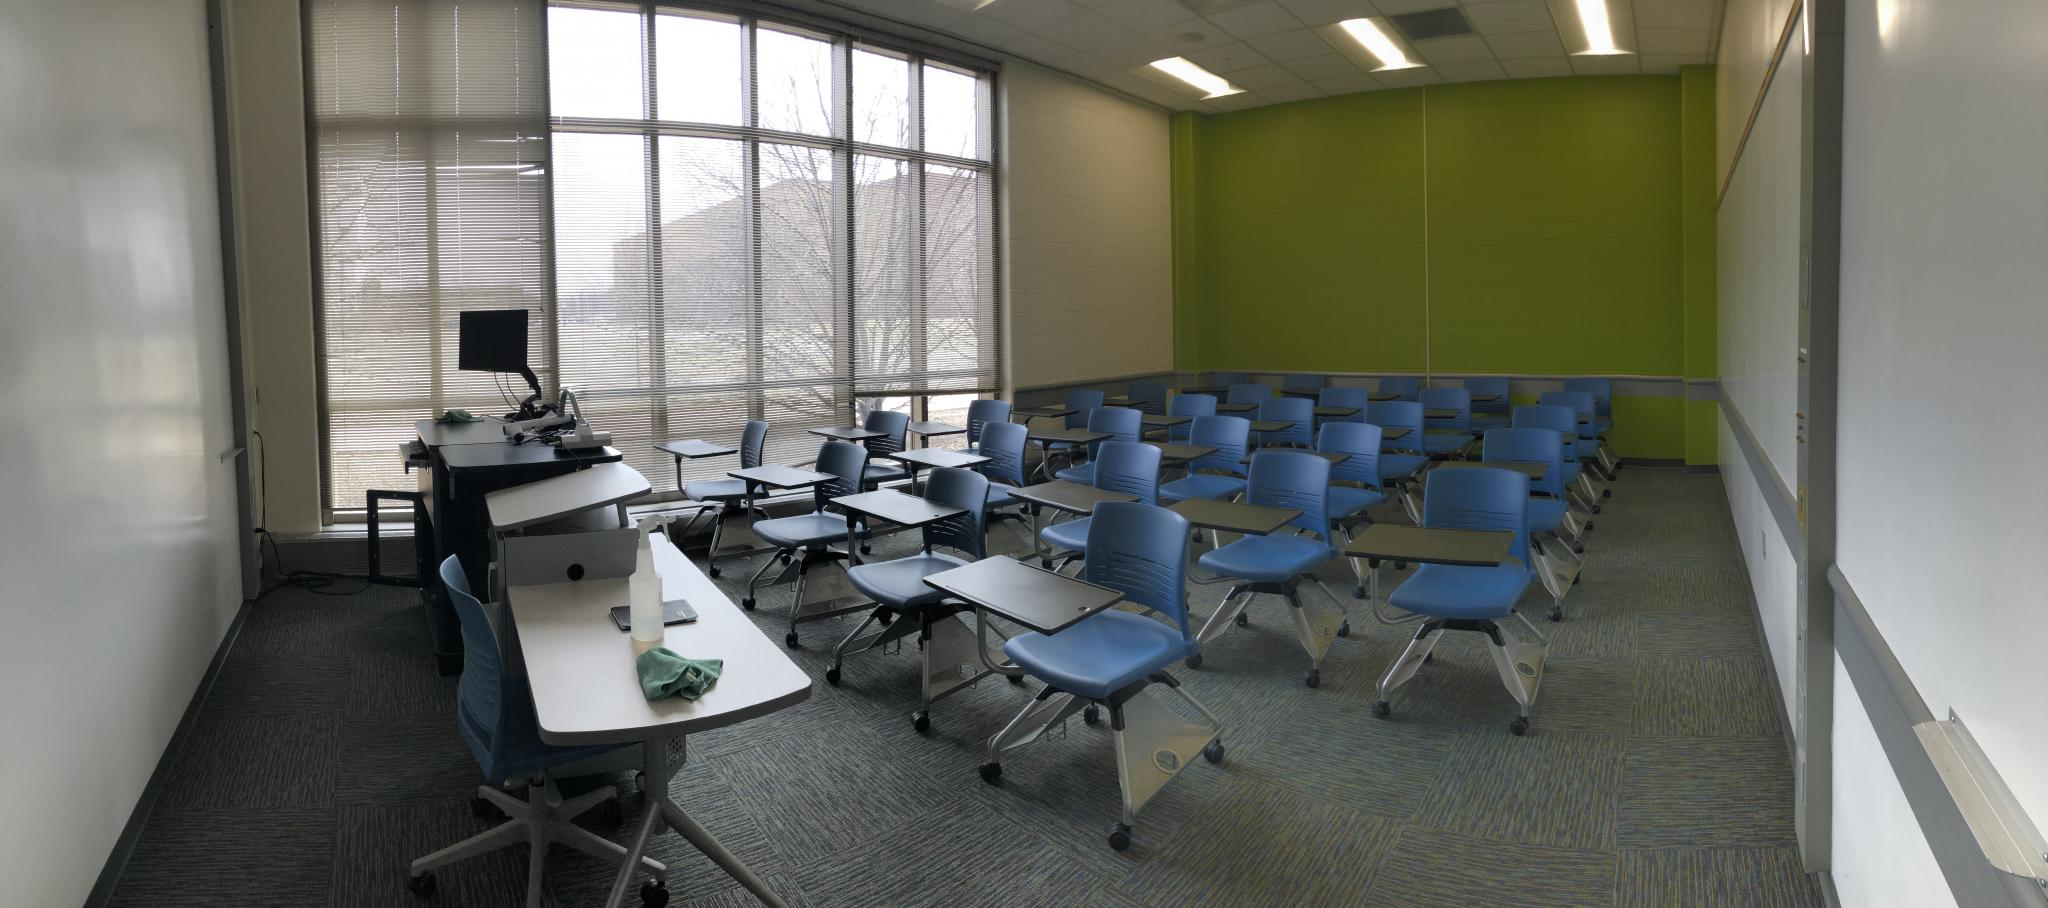 photo of classroom with large windows